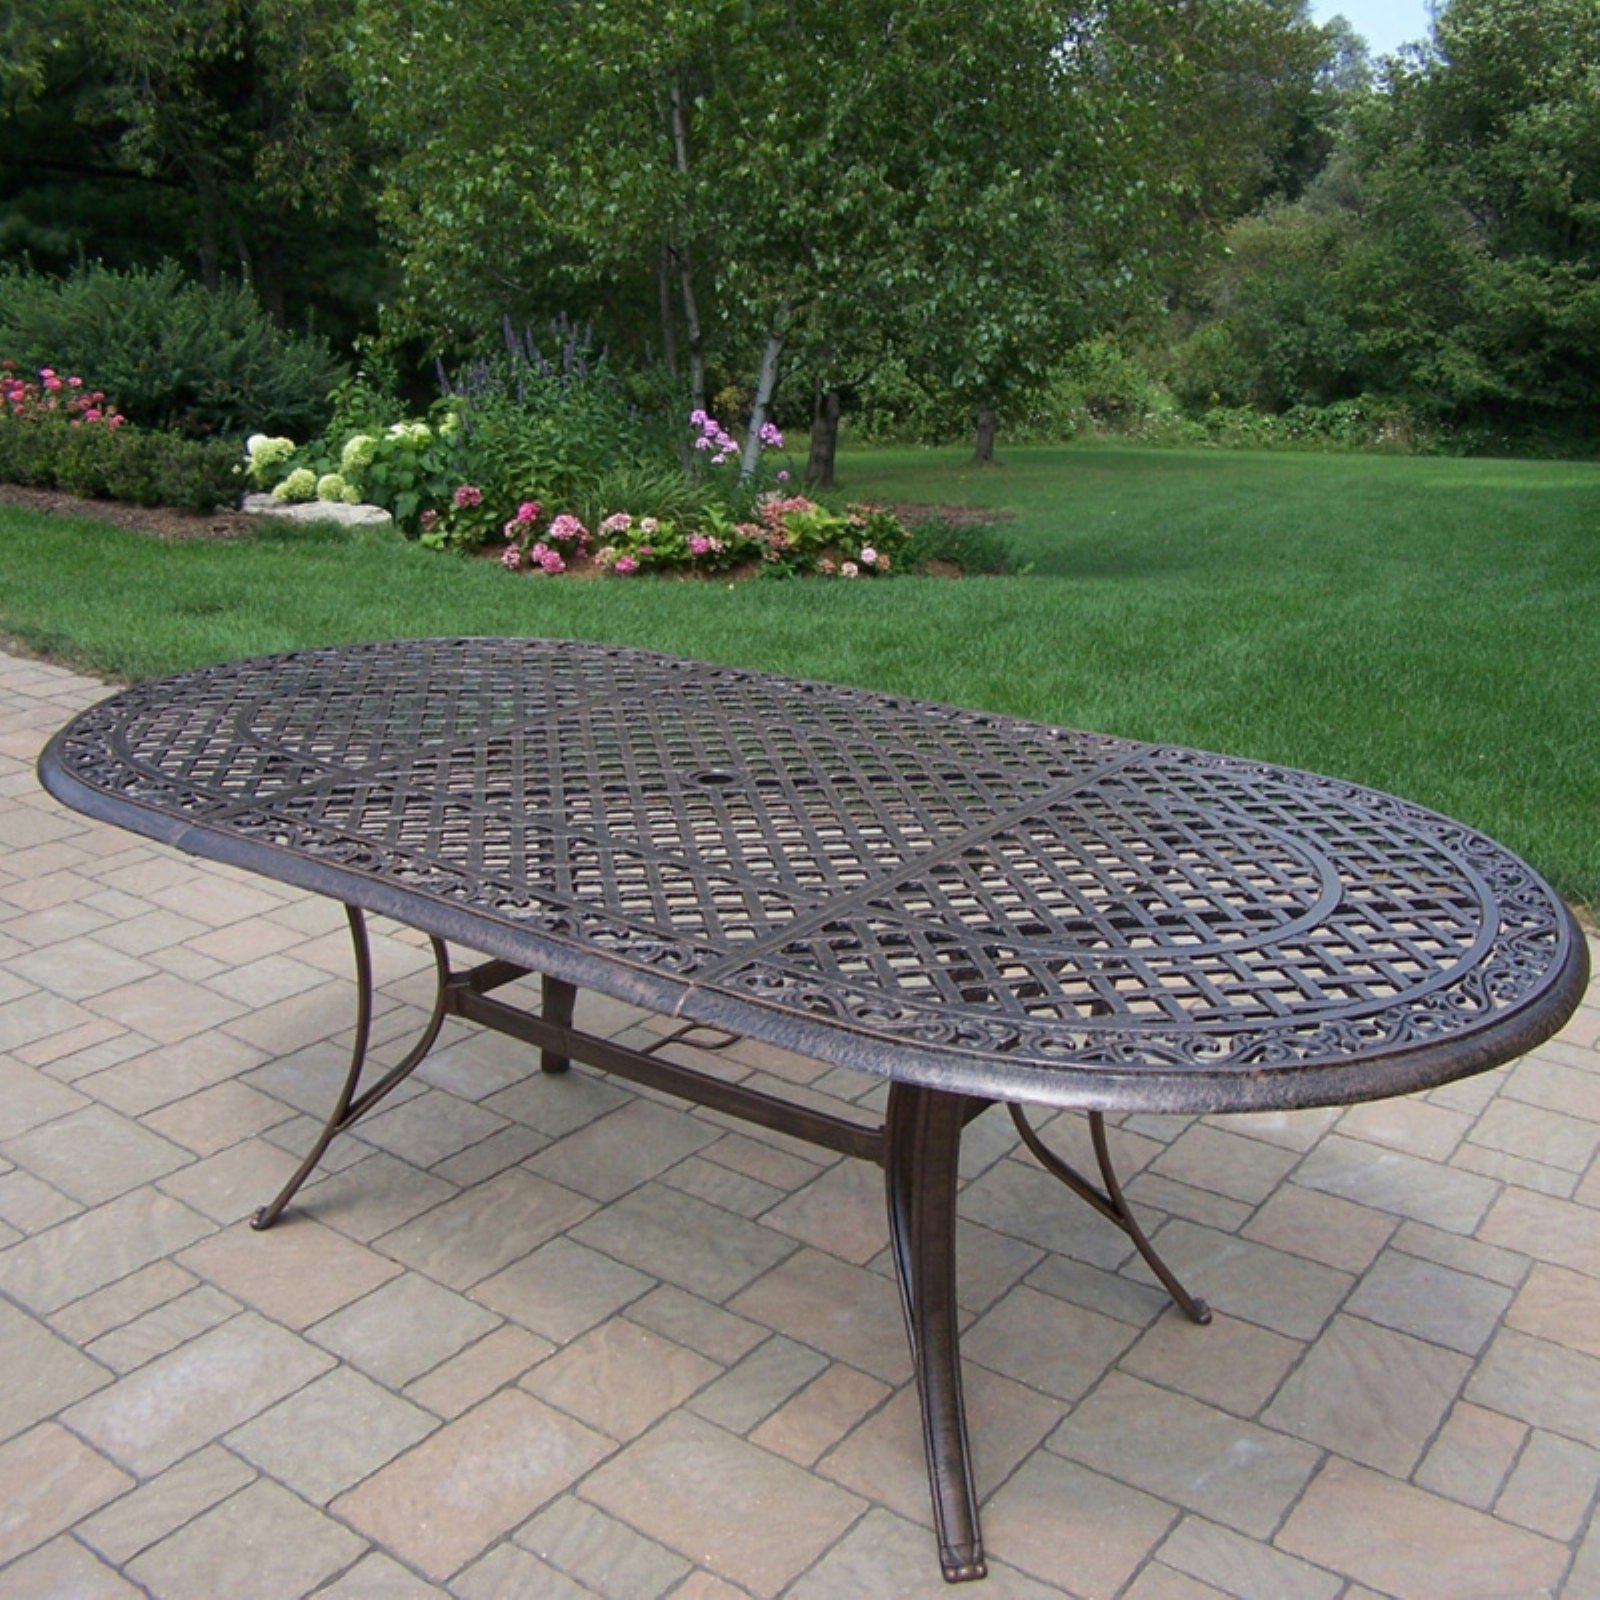 Oakland Living Mississippi Cast Aluminum 82 X 42 In. Oval Patio Dining Table